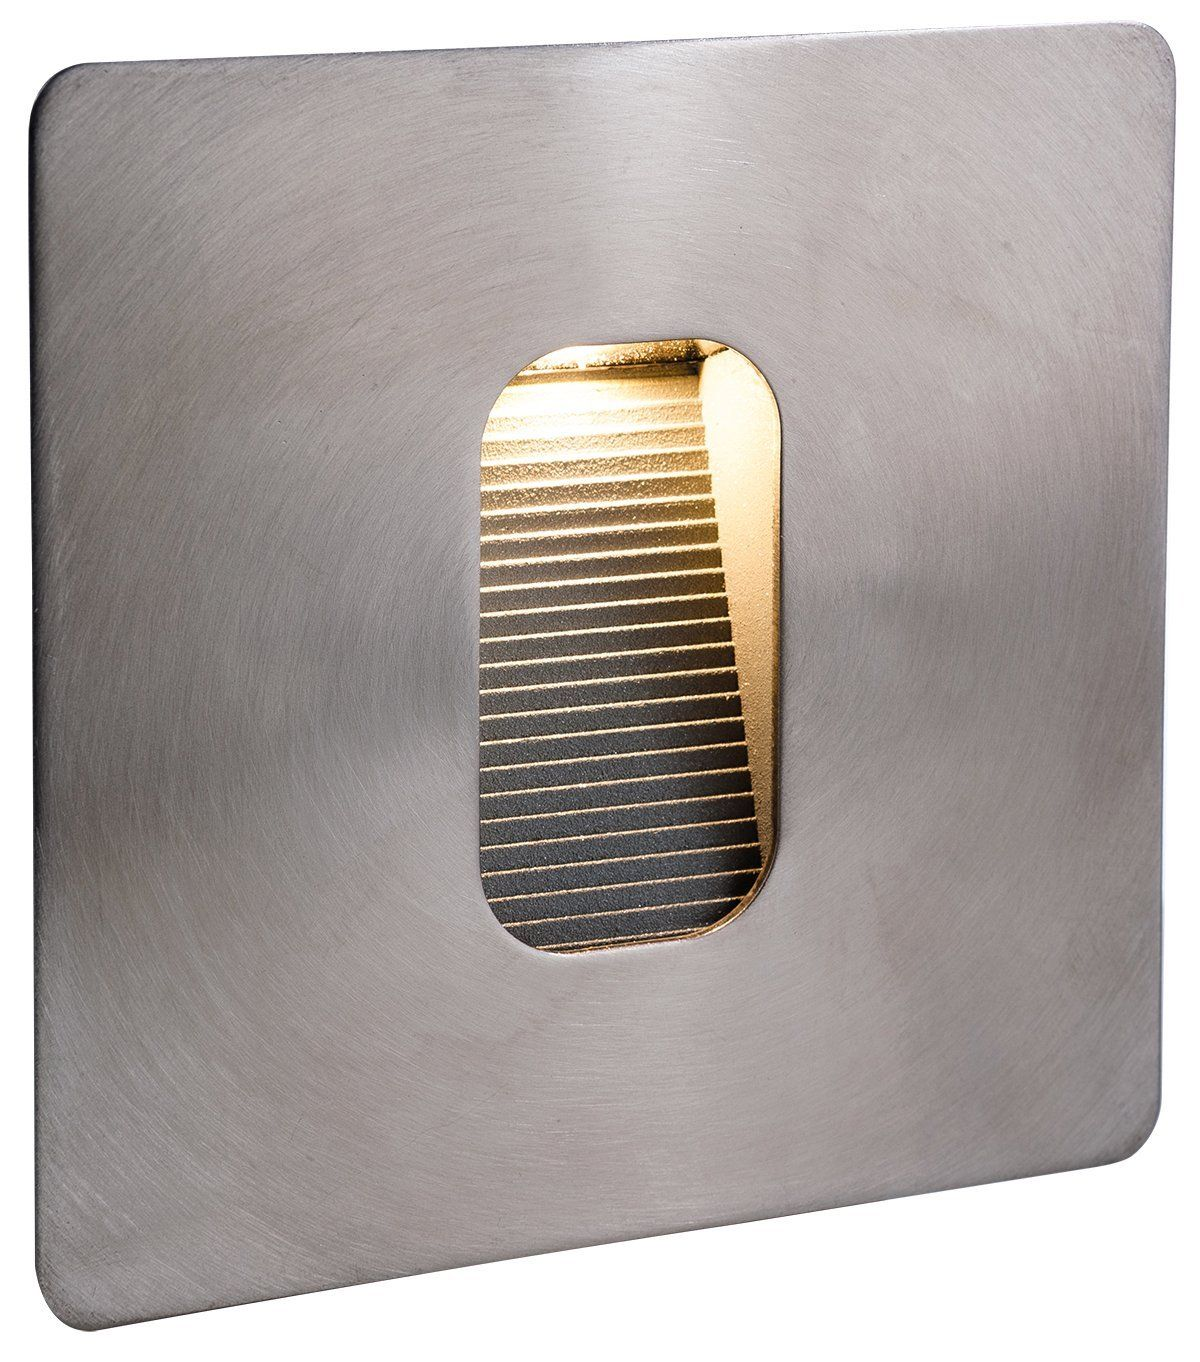 Firstlight 3420st 3w led wall and step light stainless steel buy firstlight square outdoor recessed step wall light in stainless steel find outdoor step wall lights at arrow electrical aloadofball Choice Image